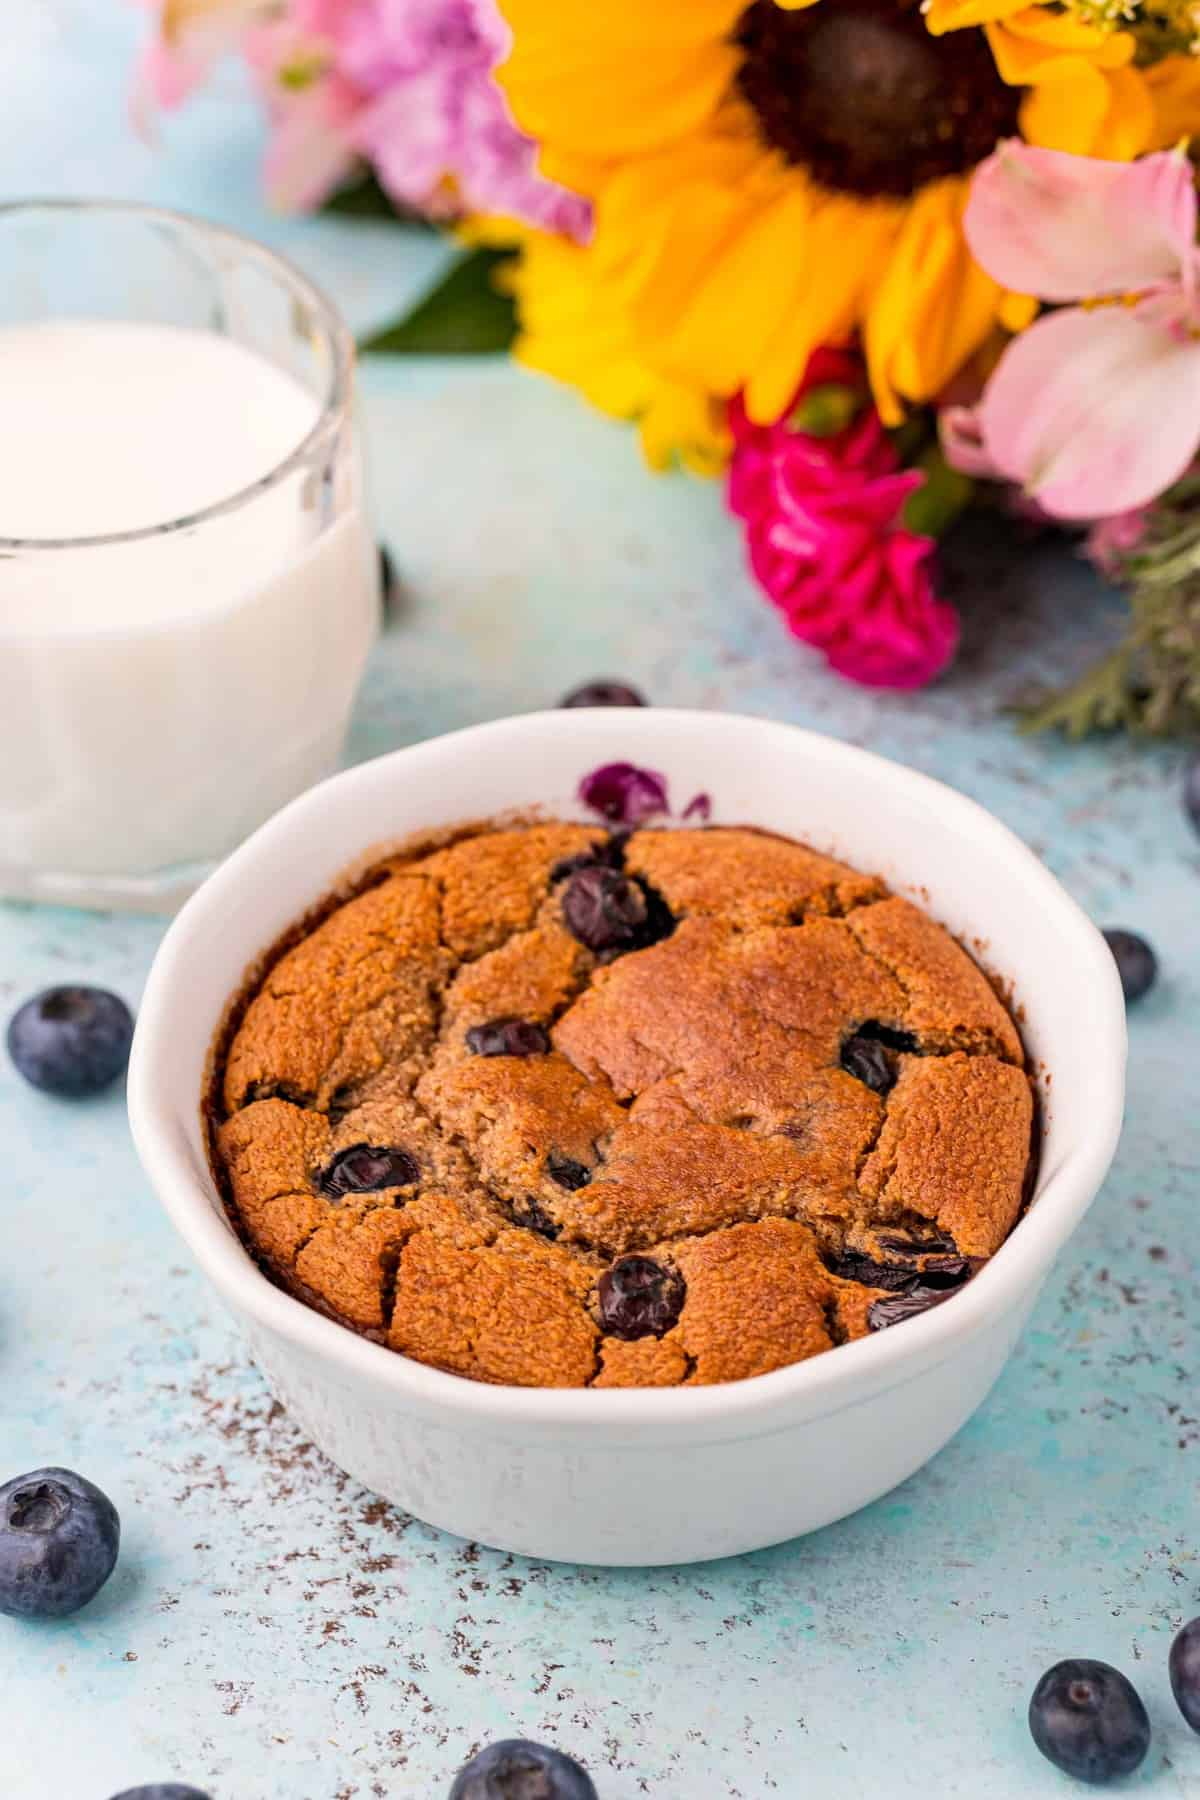 Baked oatmeal with blueberries, no toppings.